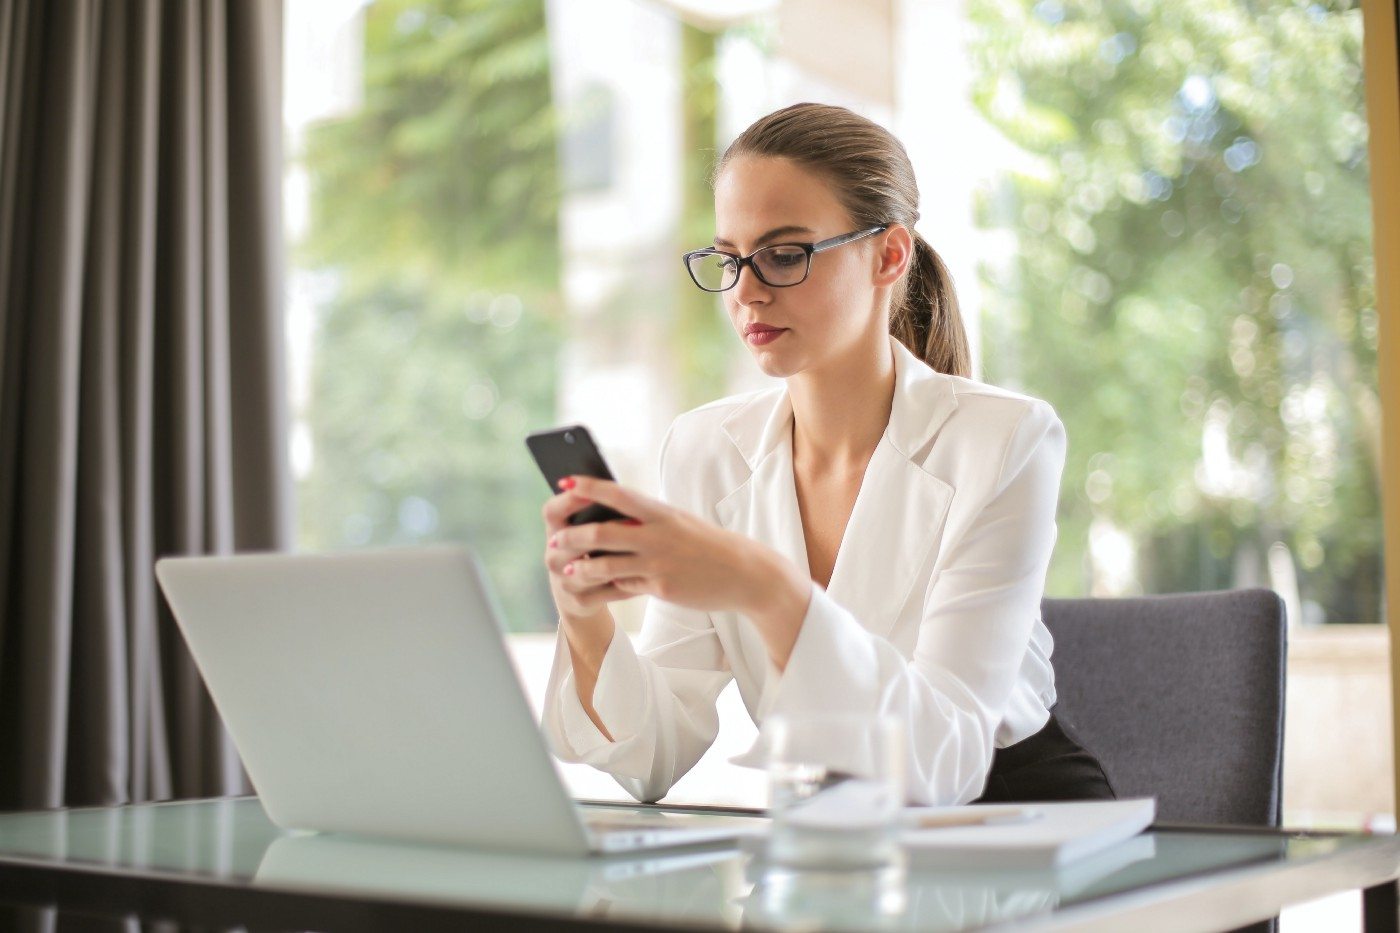 3 Things She May Be Hiding On Her Dating Profile